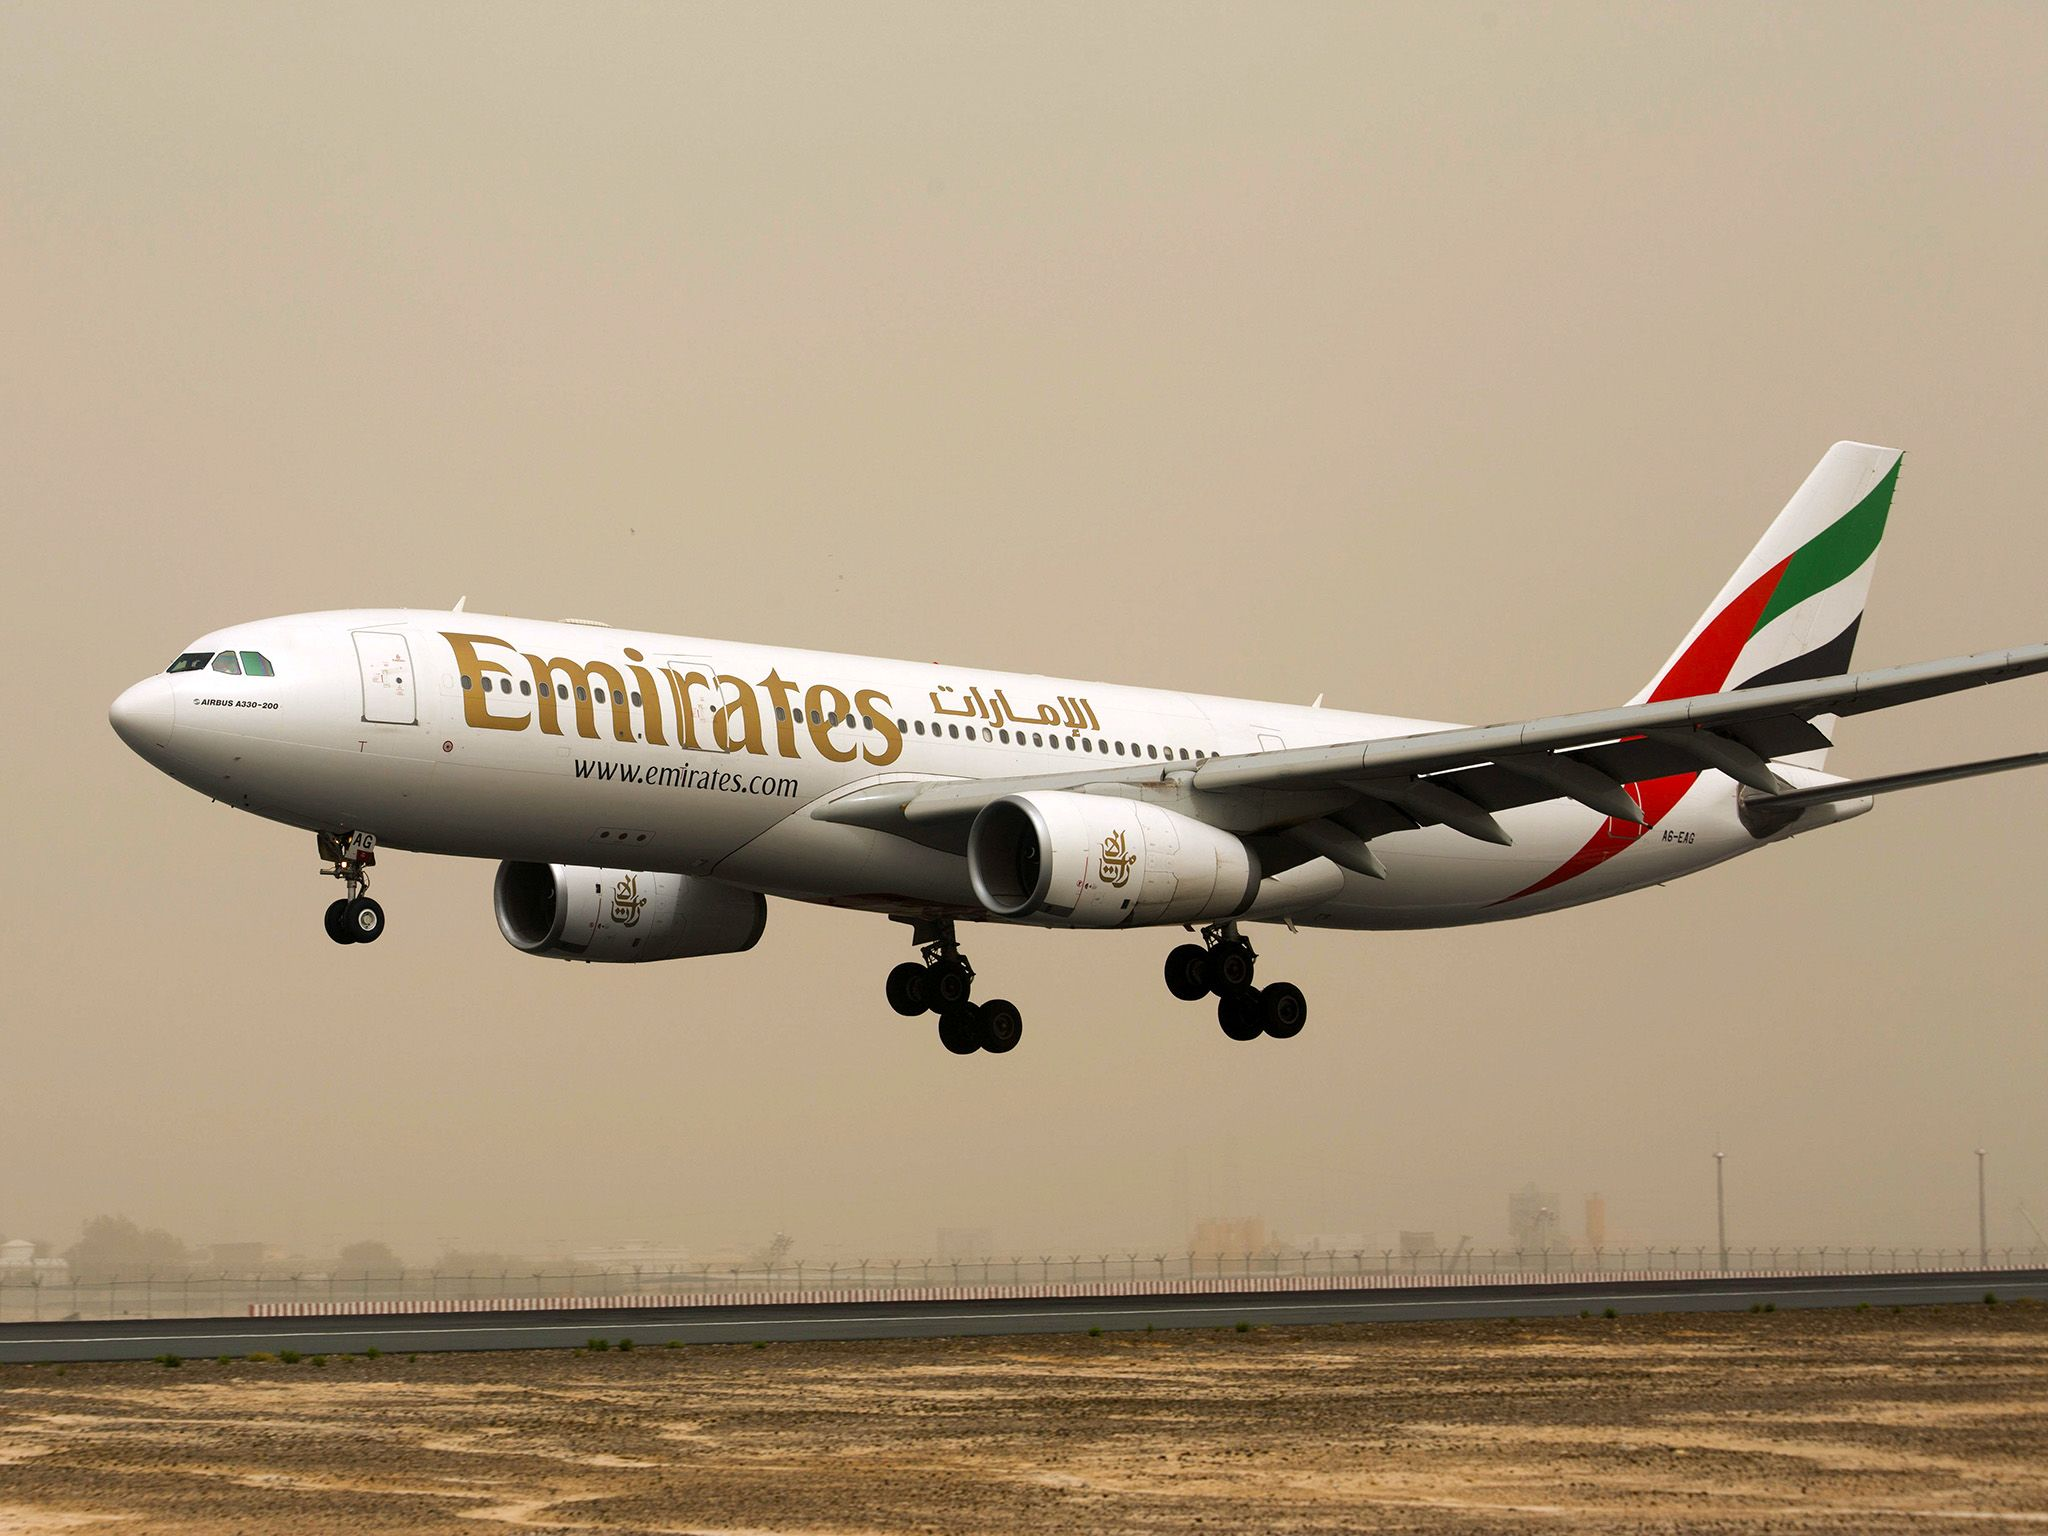 Dubai: Emirates aircraft at take off. This image is from Ultimate Airport Dubai. [Photo of the day - 十月 2015]